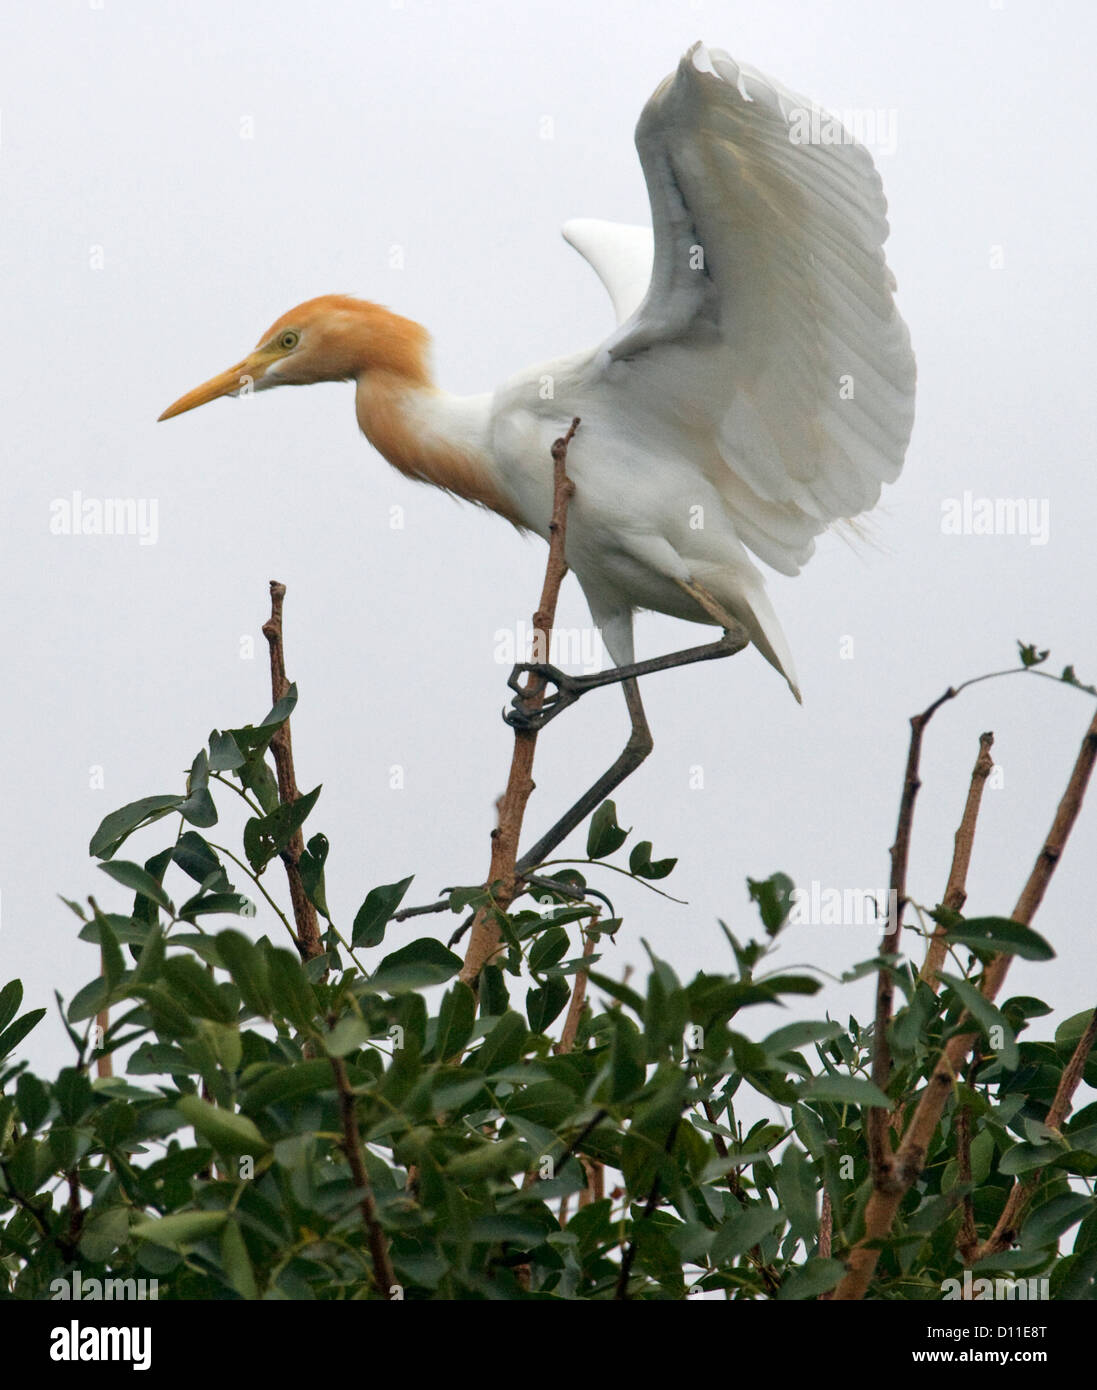 Cattle egret - Bubulcus ibis -  in breeding plumage with wings outstretched against the sky as it takes to the air - Stock Image